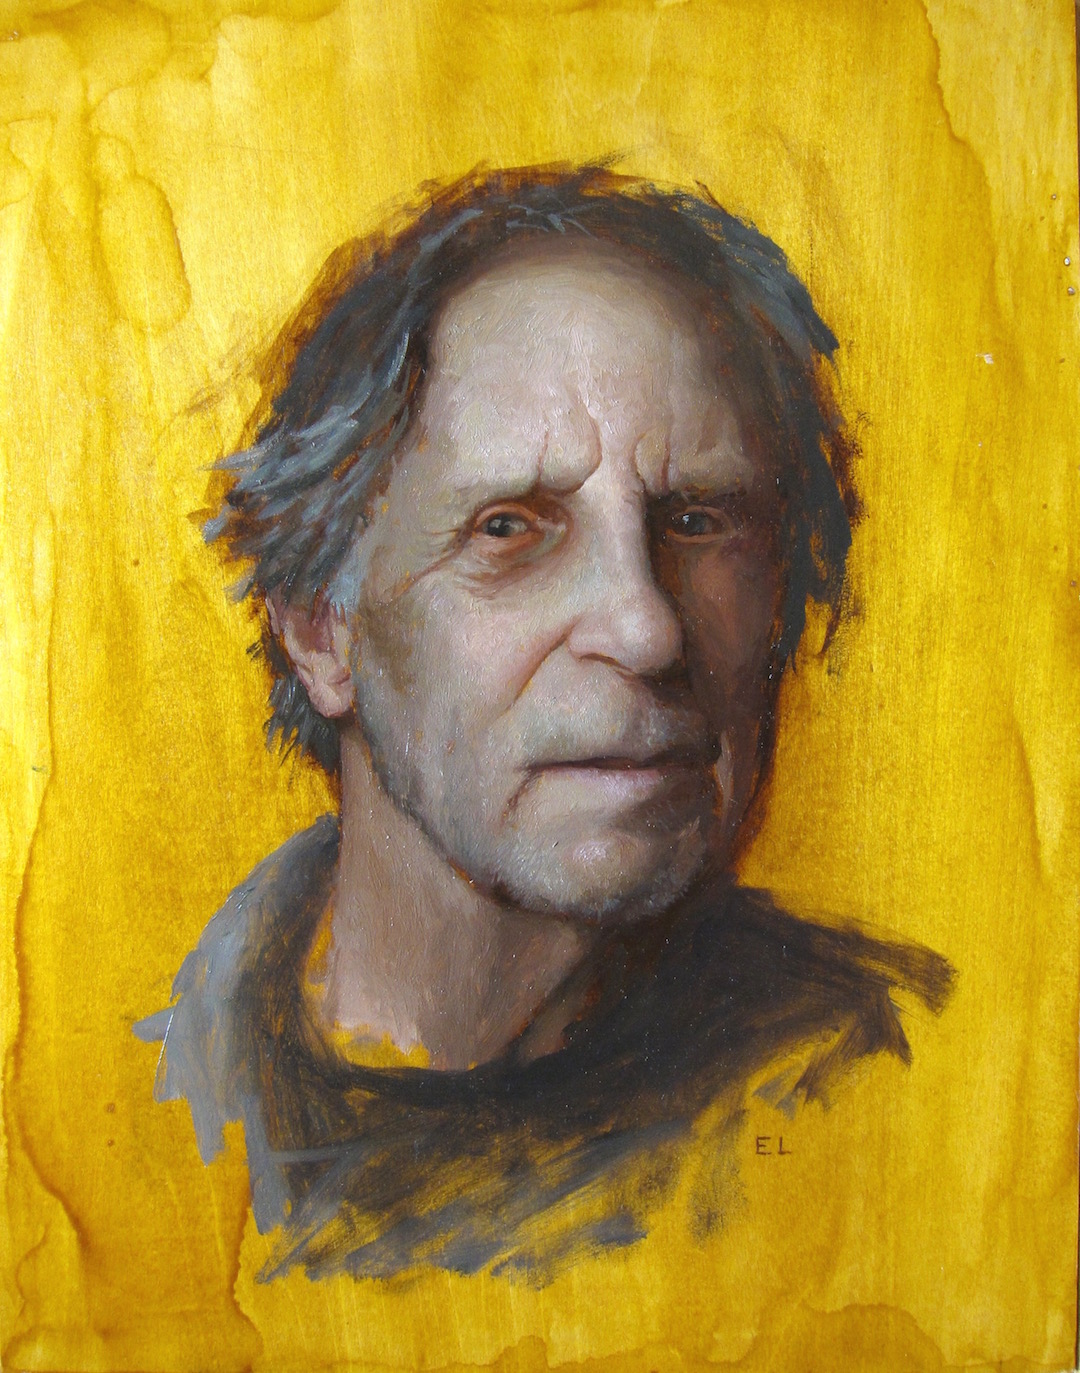 """Fred Beckey,"" original oil painting on wood panel, after a photo by Kris Stanton."